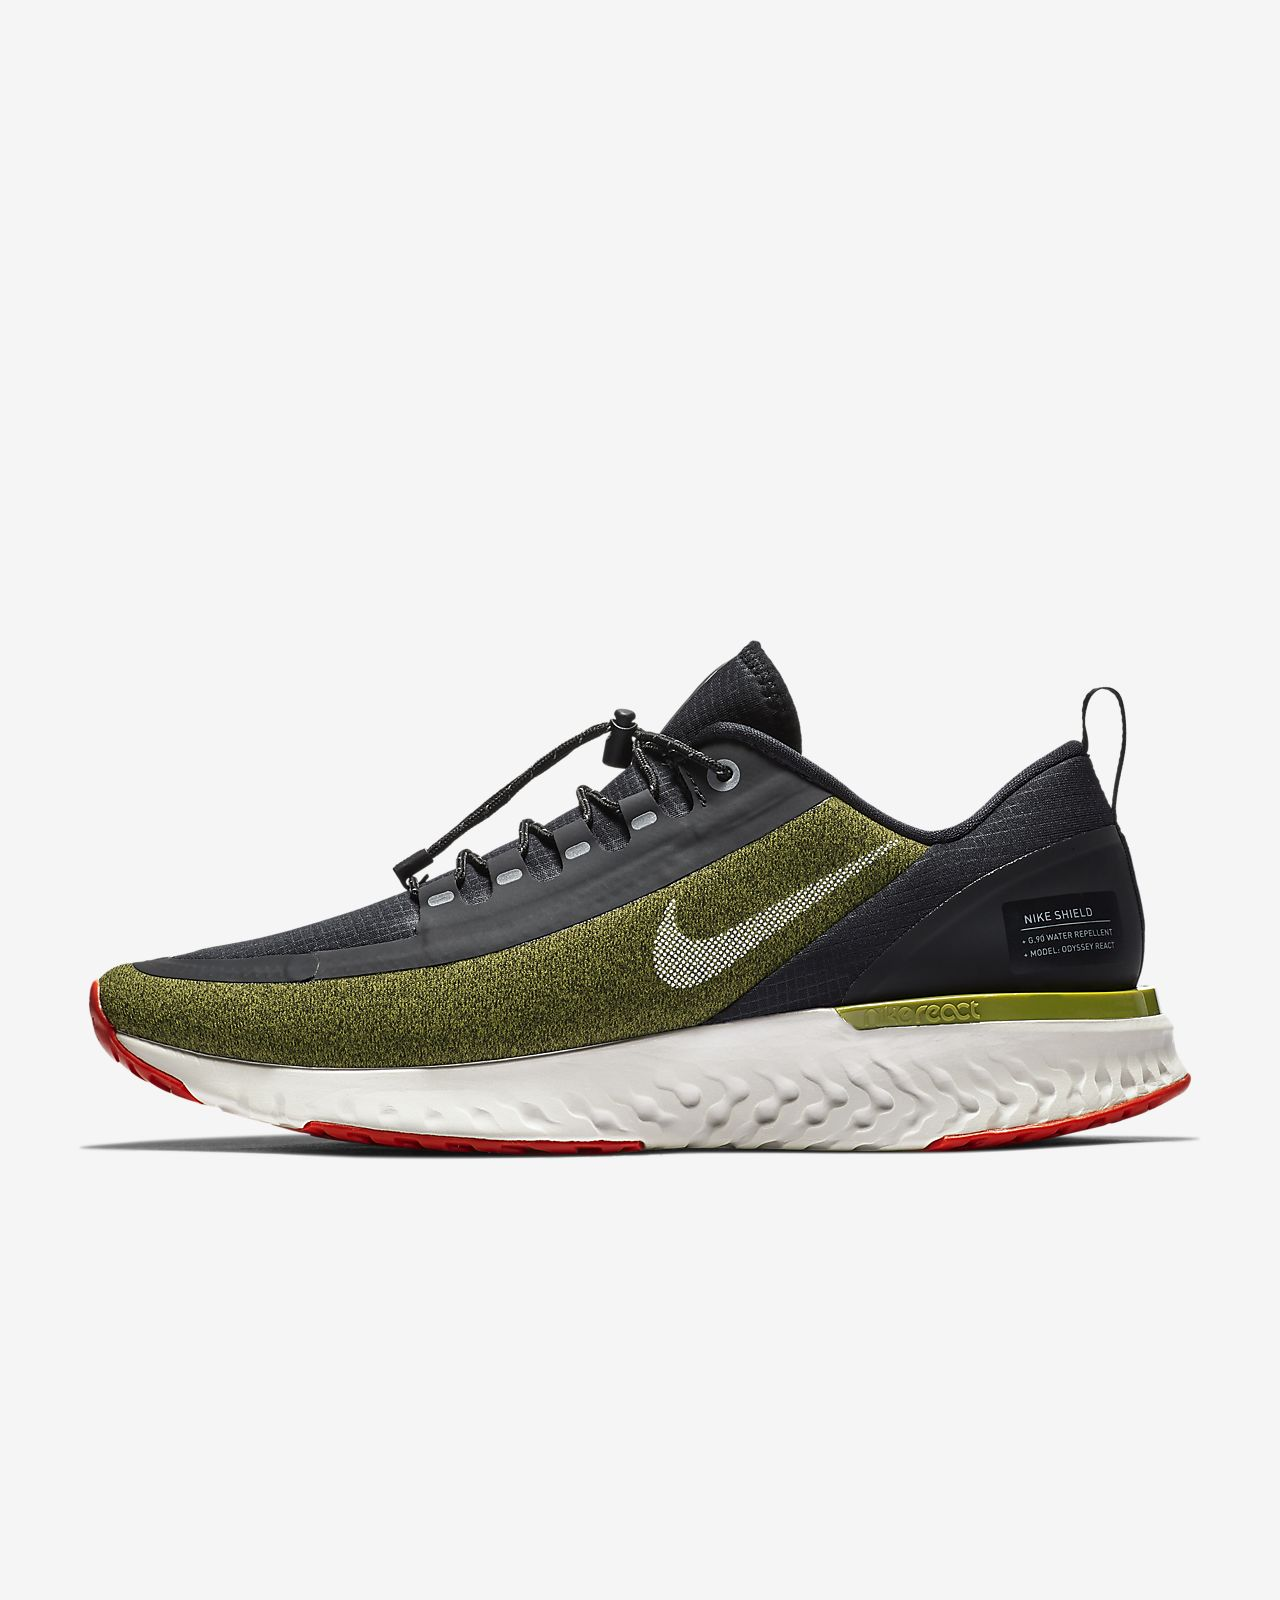 2e8264b6d16 Nike Odyssey React Shield Water-Repellent Men s Running Shoe. Nike ...